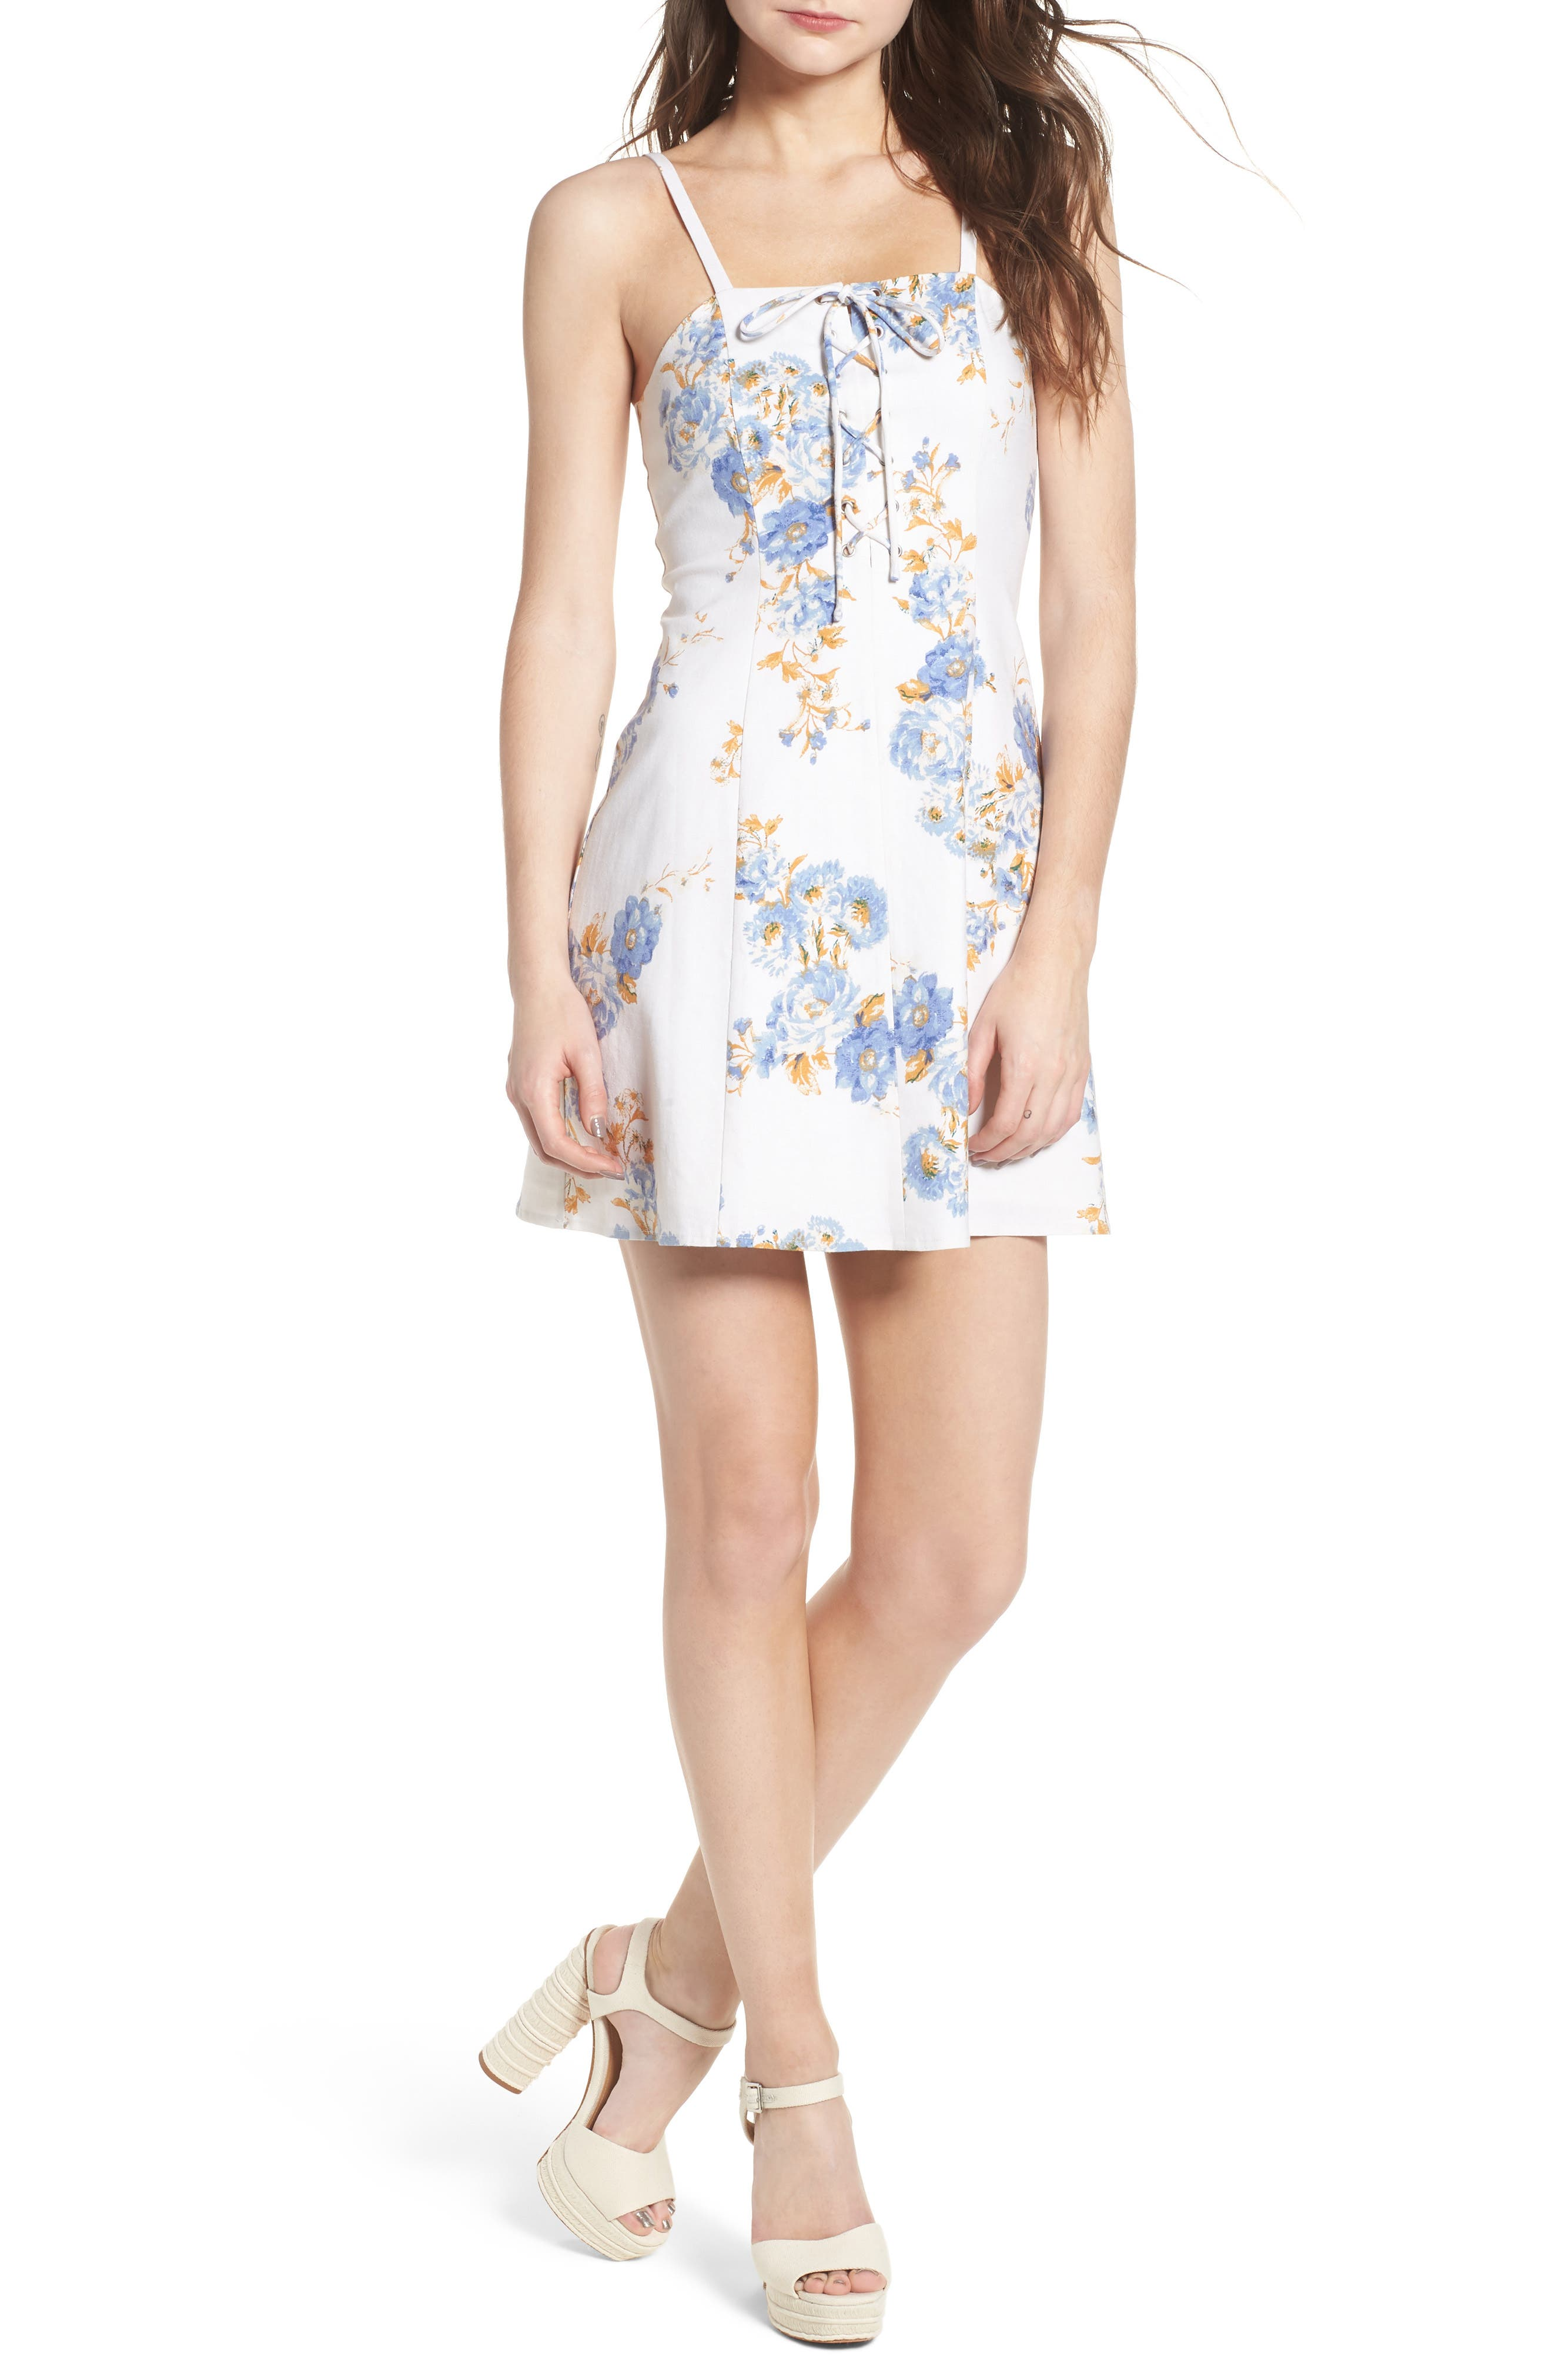 Modena Lace-Up Minidress,                         Main,                         color, Ivory Floral